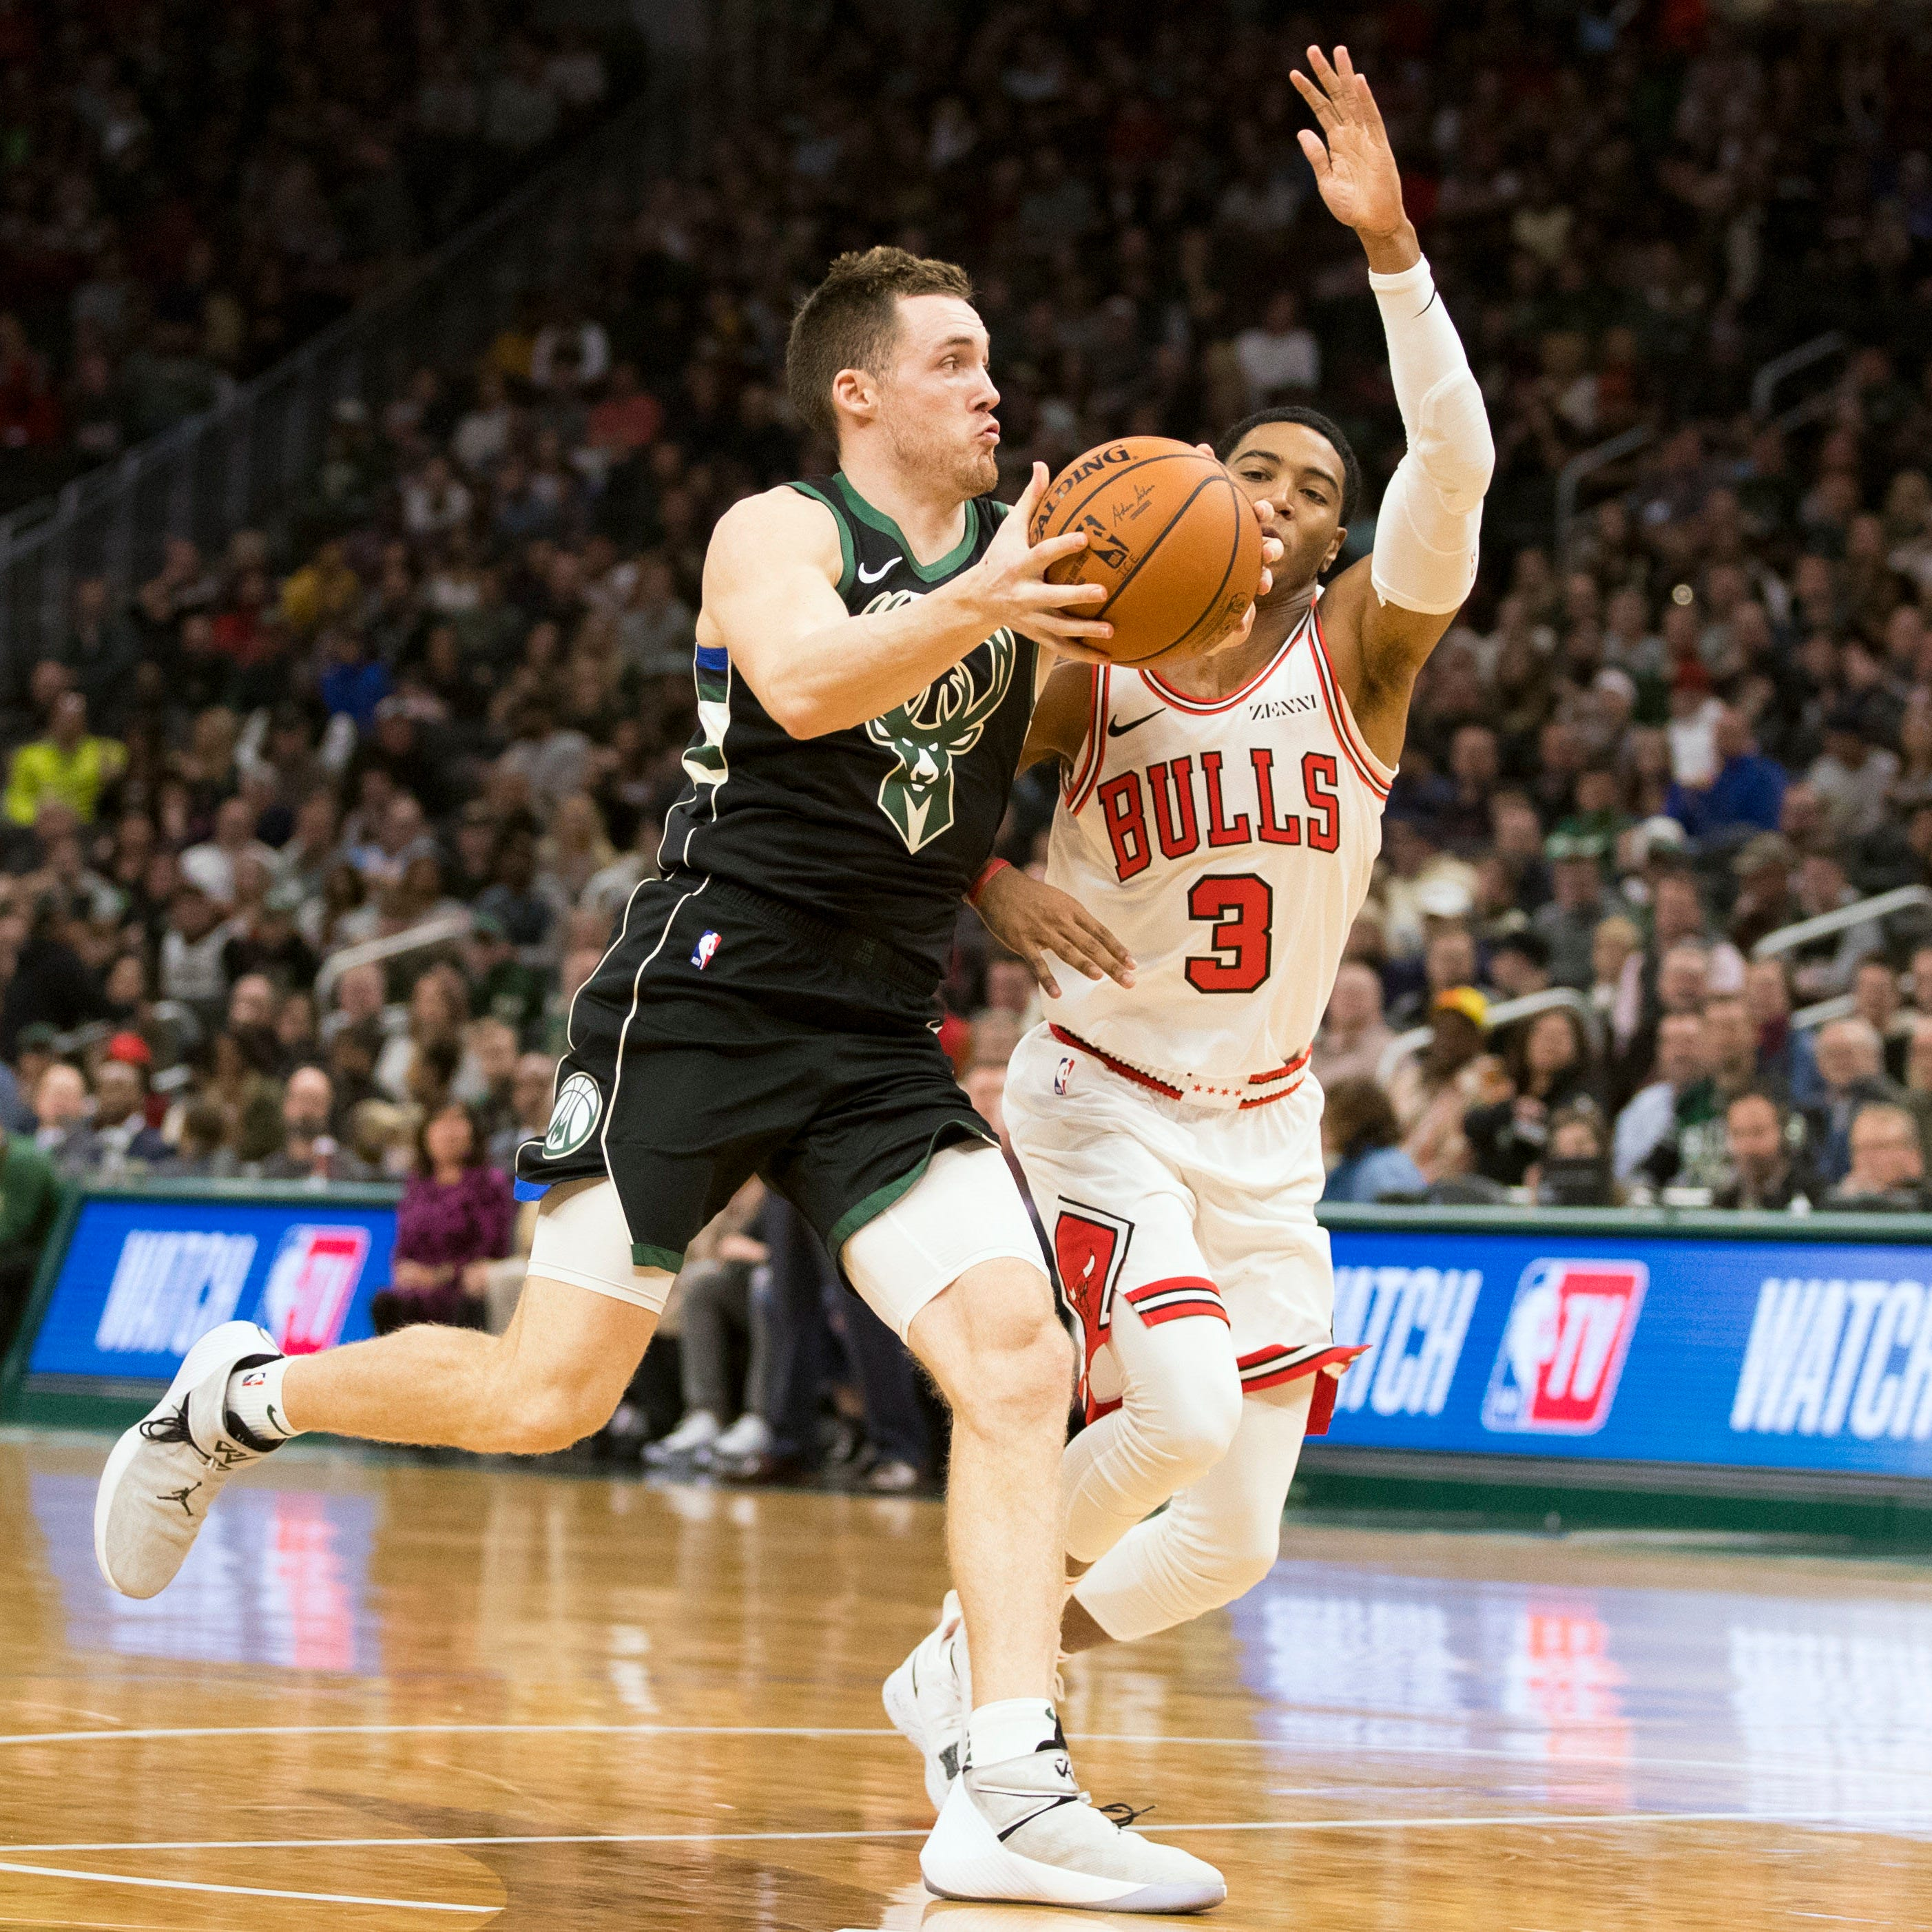 Pat Connaughton making his presence felt, building chemistry with Bucks